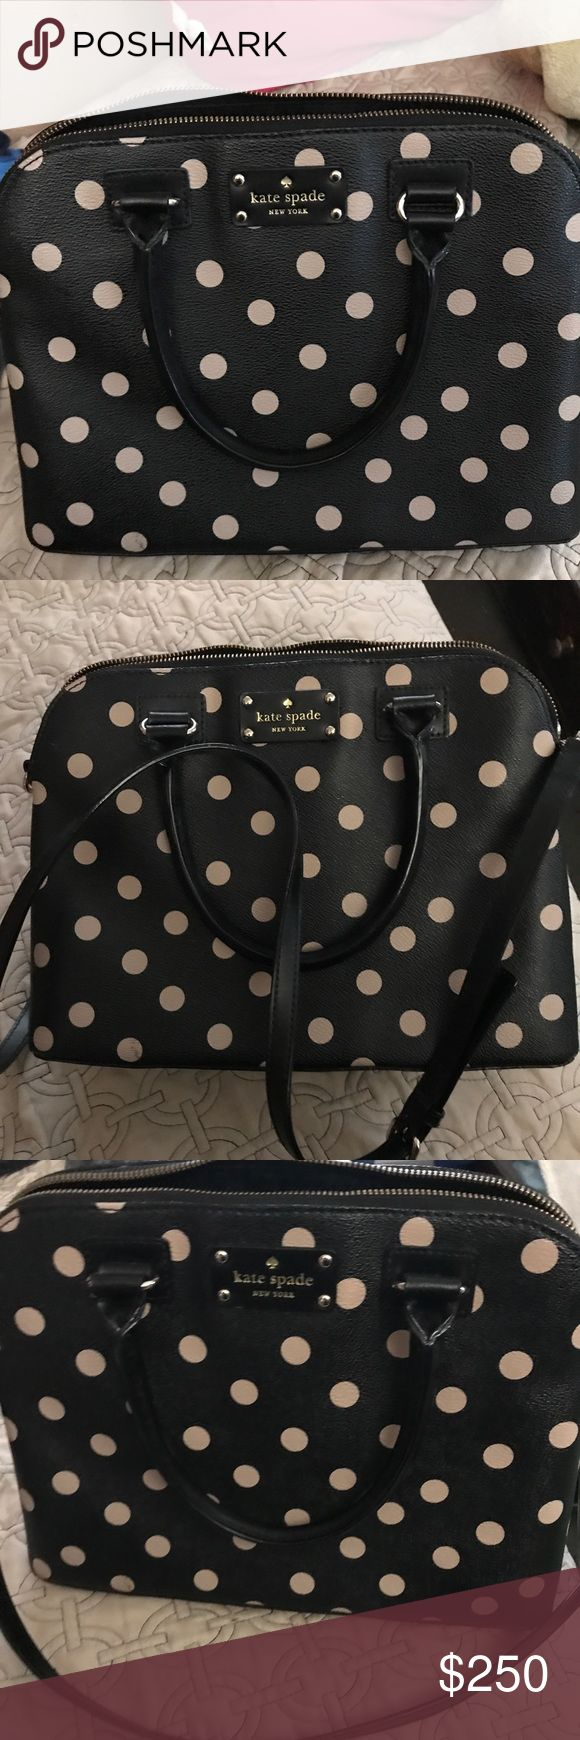 Kate Spade Polka Dot Purse Hardly used. Very spacious. Has long strap which can be adjusted. No rips or stains. Looks great with any outfit. Great for a present or for yourself. kate spade Bags Shoulder Bags